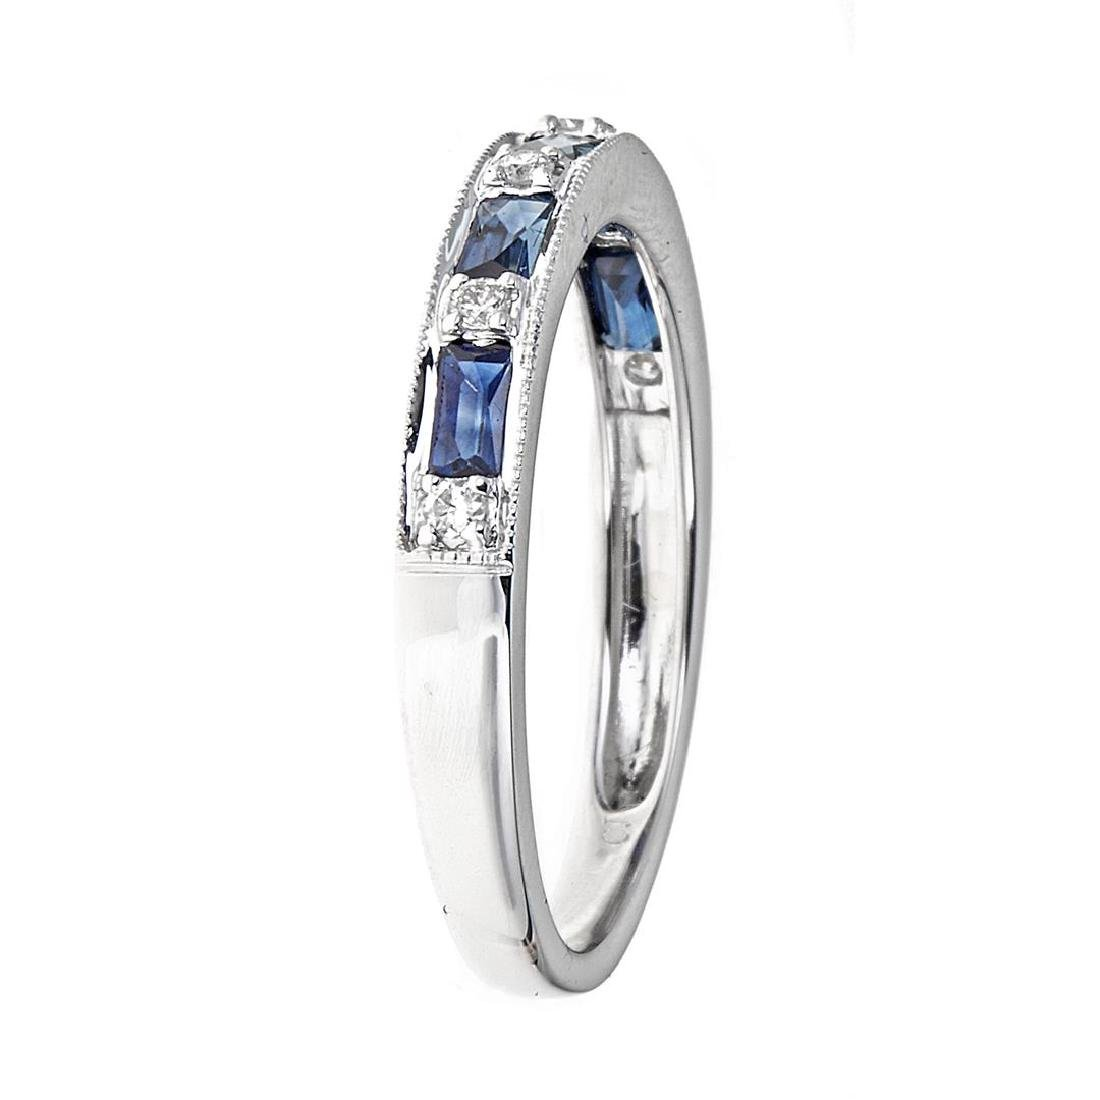 0.76 ctw Blue Sapphire and Diamond Ring - 18KT White - 3